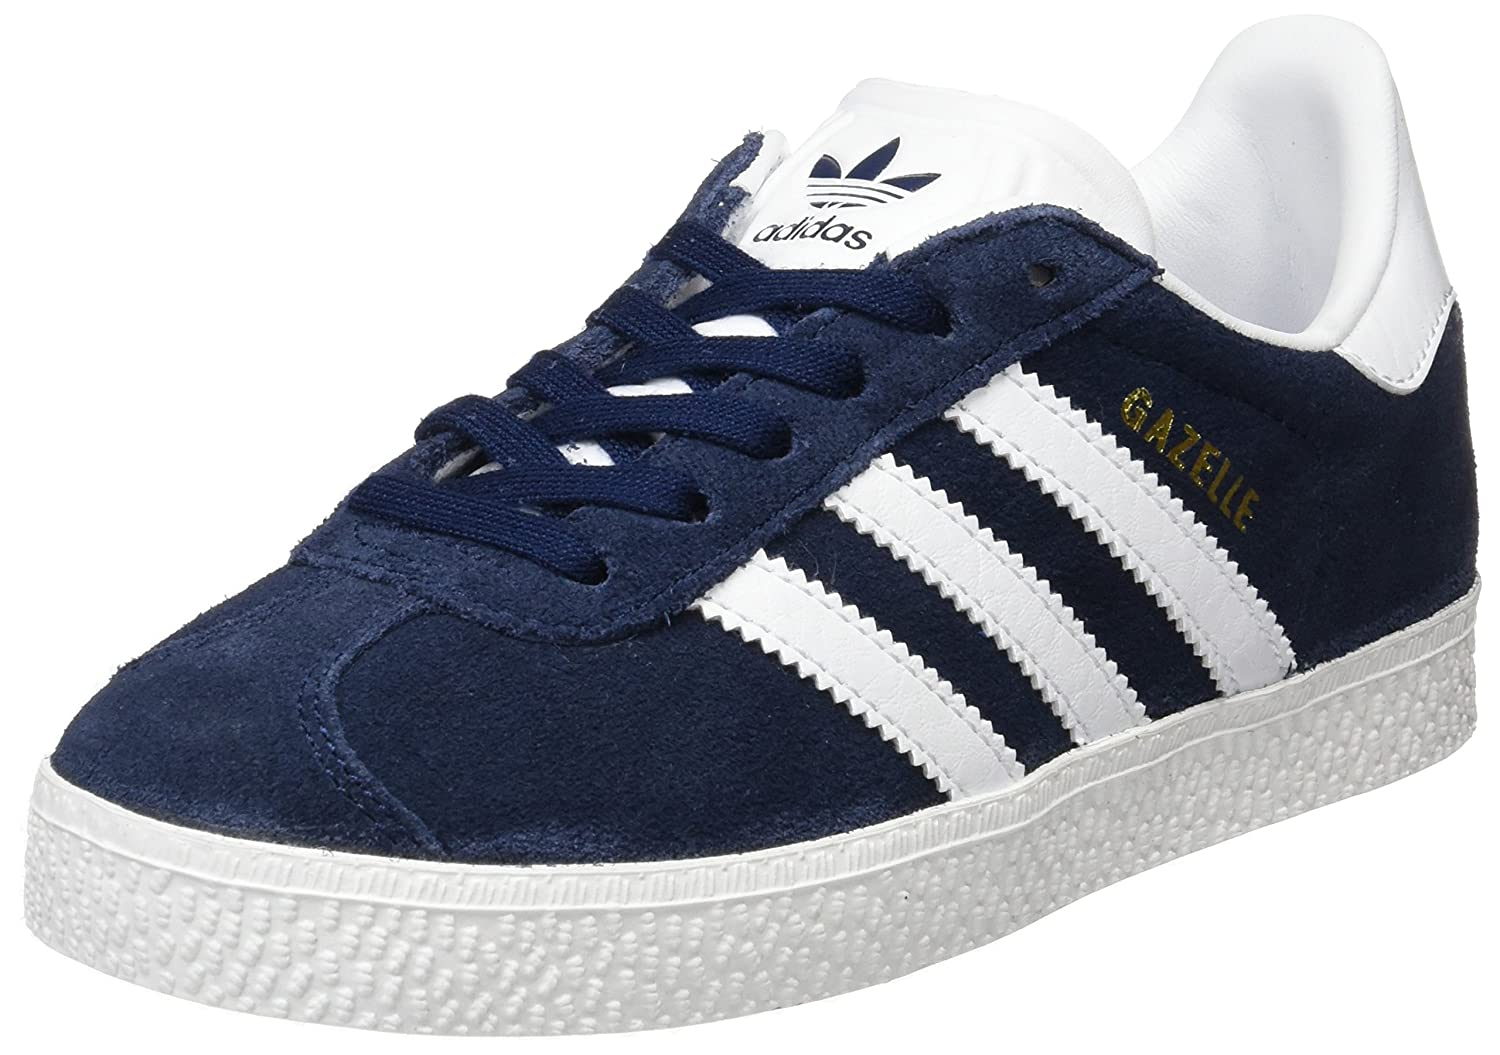 new product c9a04 3f46c Amazon.com   adidas Originals Gazelle Shoes   Sneakers